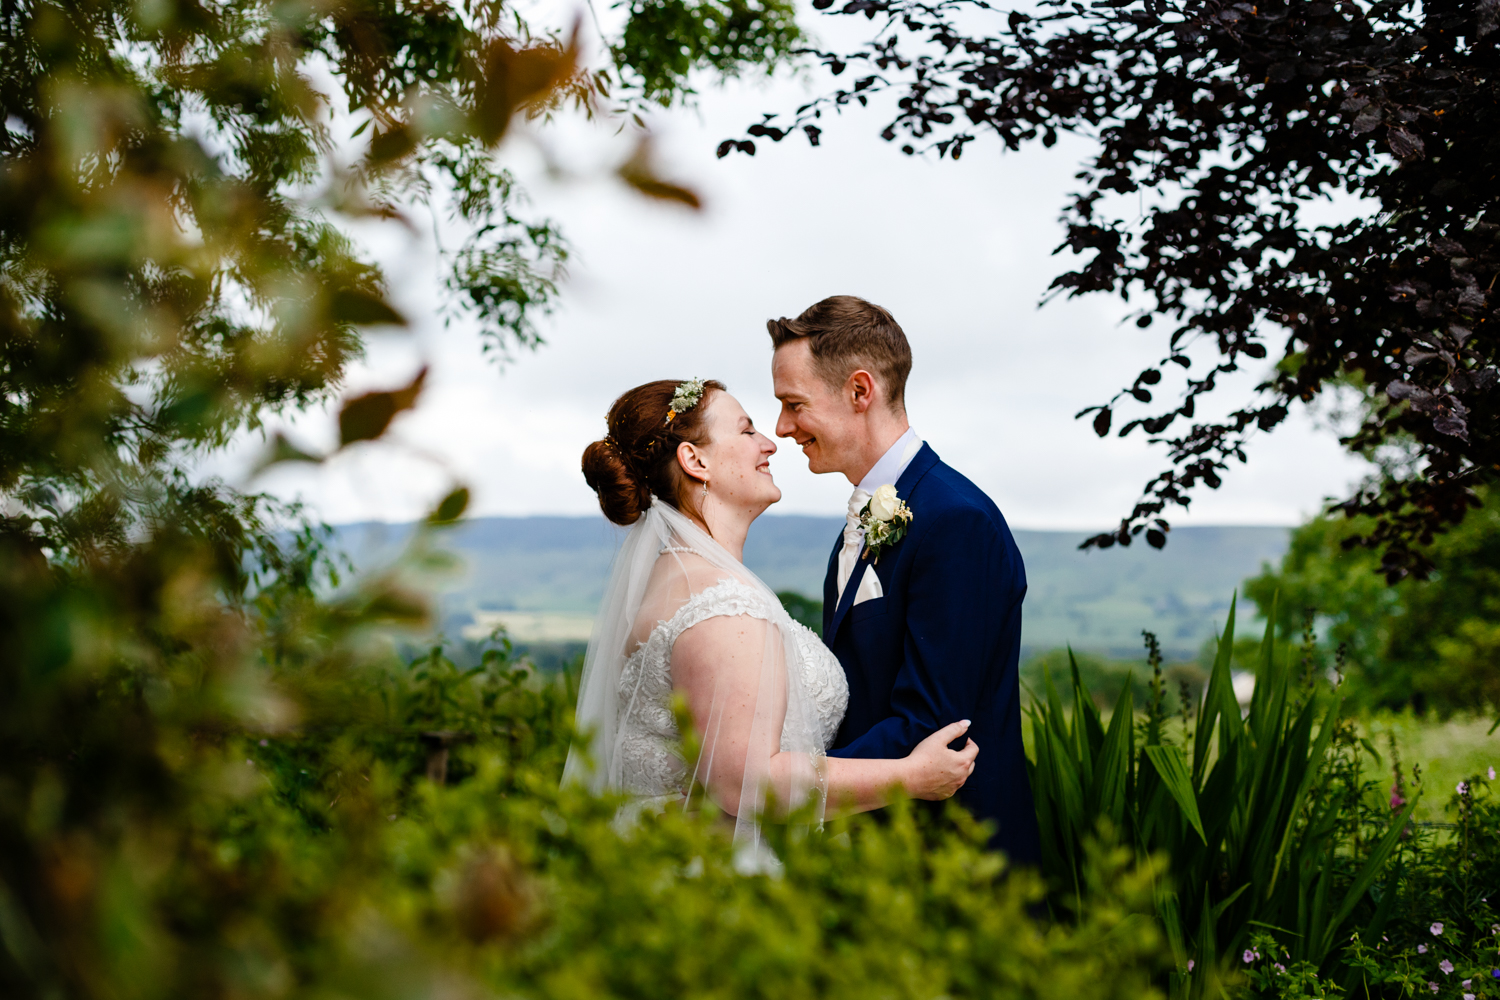 Adele & Alex - Chipping Village Hall, Ribble Valley